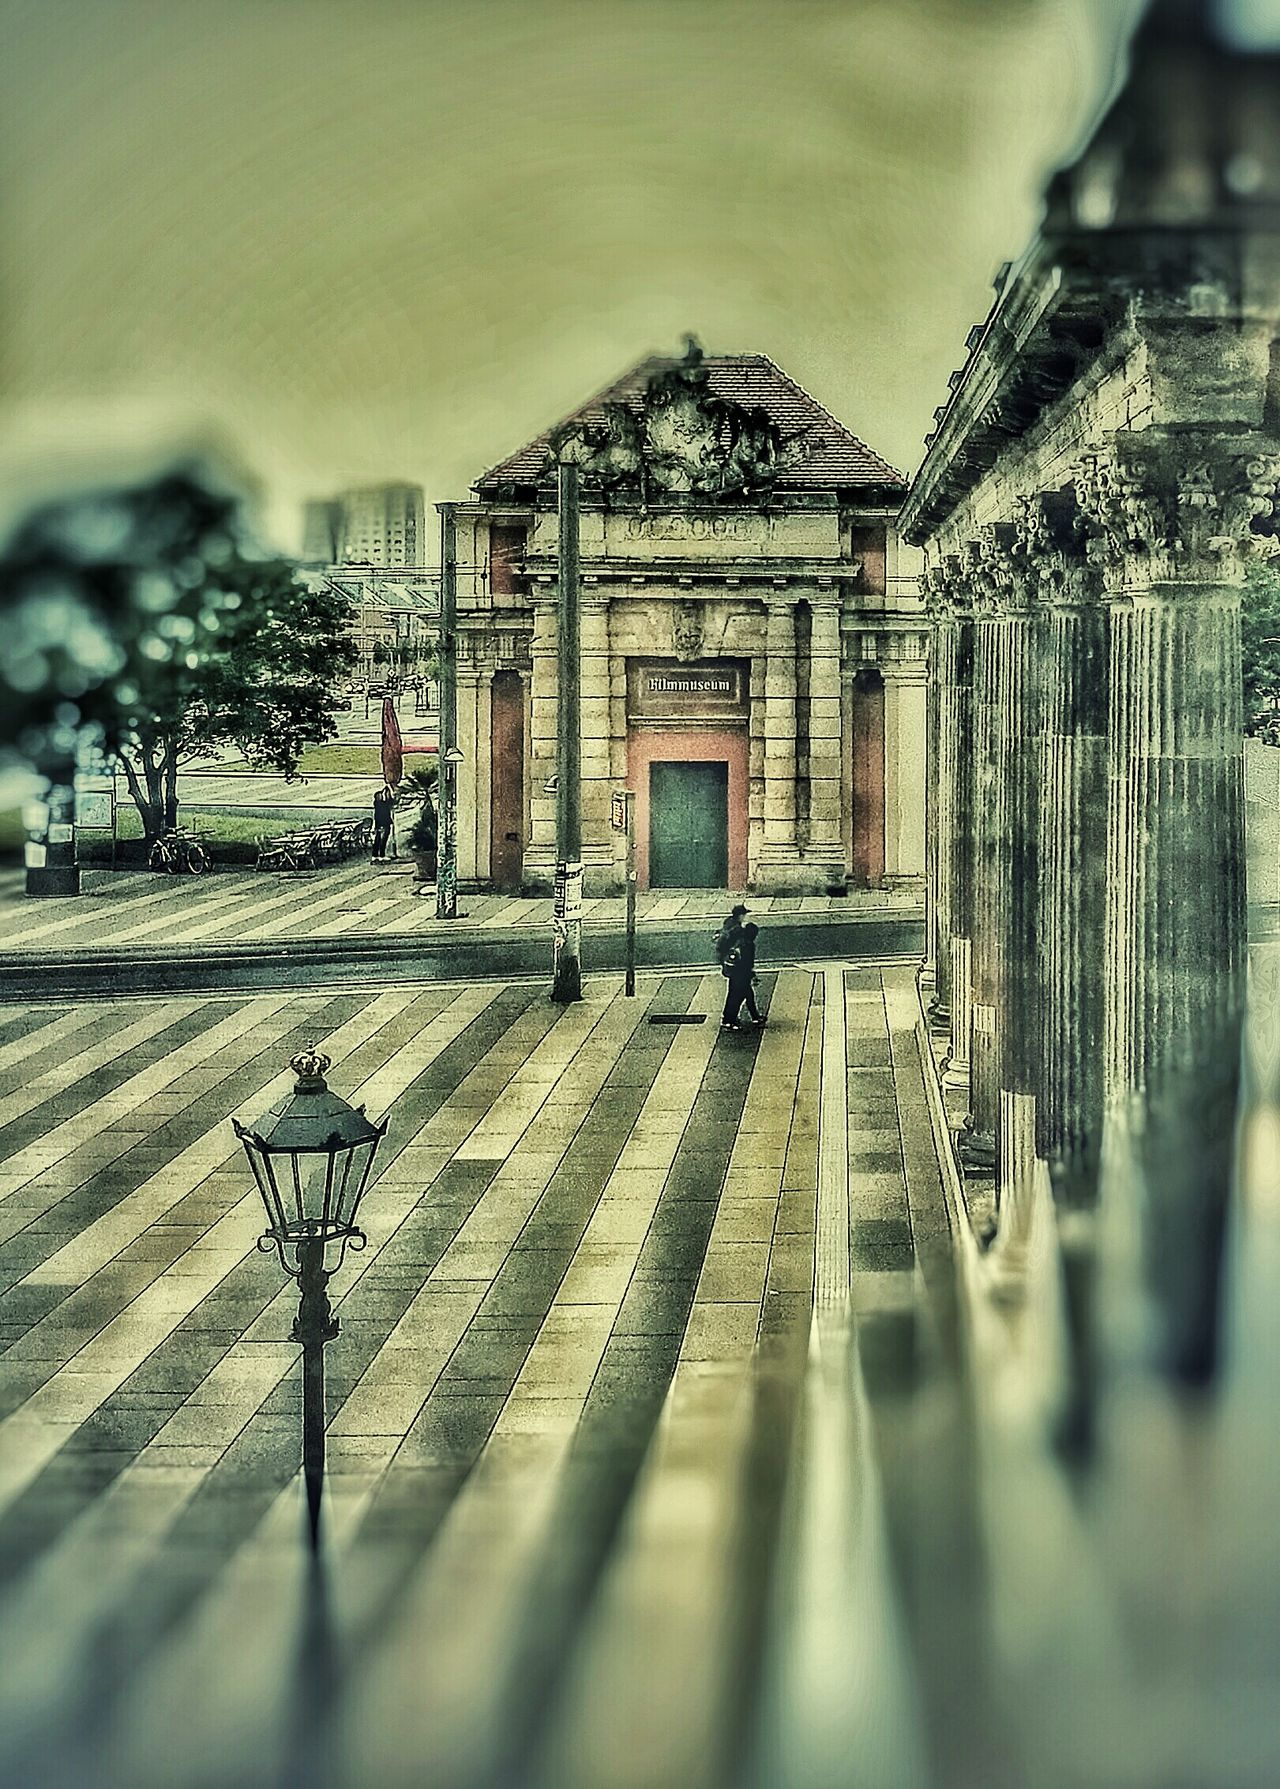 Szene in Potsdam Colour Of Life Personal Perspective Home Sweet Home Historical Buildings Home Is Where The Art Is Atmospheric Mood Cloudy Day Raining Day Colonnade Filmmuseum Marstall Baroque Architecture Alter Markt Lustgarten Tramway Silhouette Lines And Shapes Idyllic Atmospheric